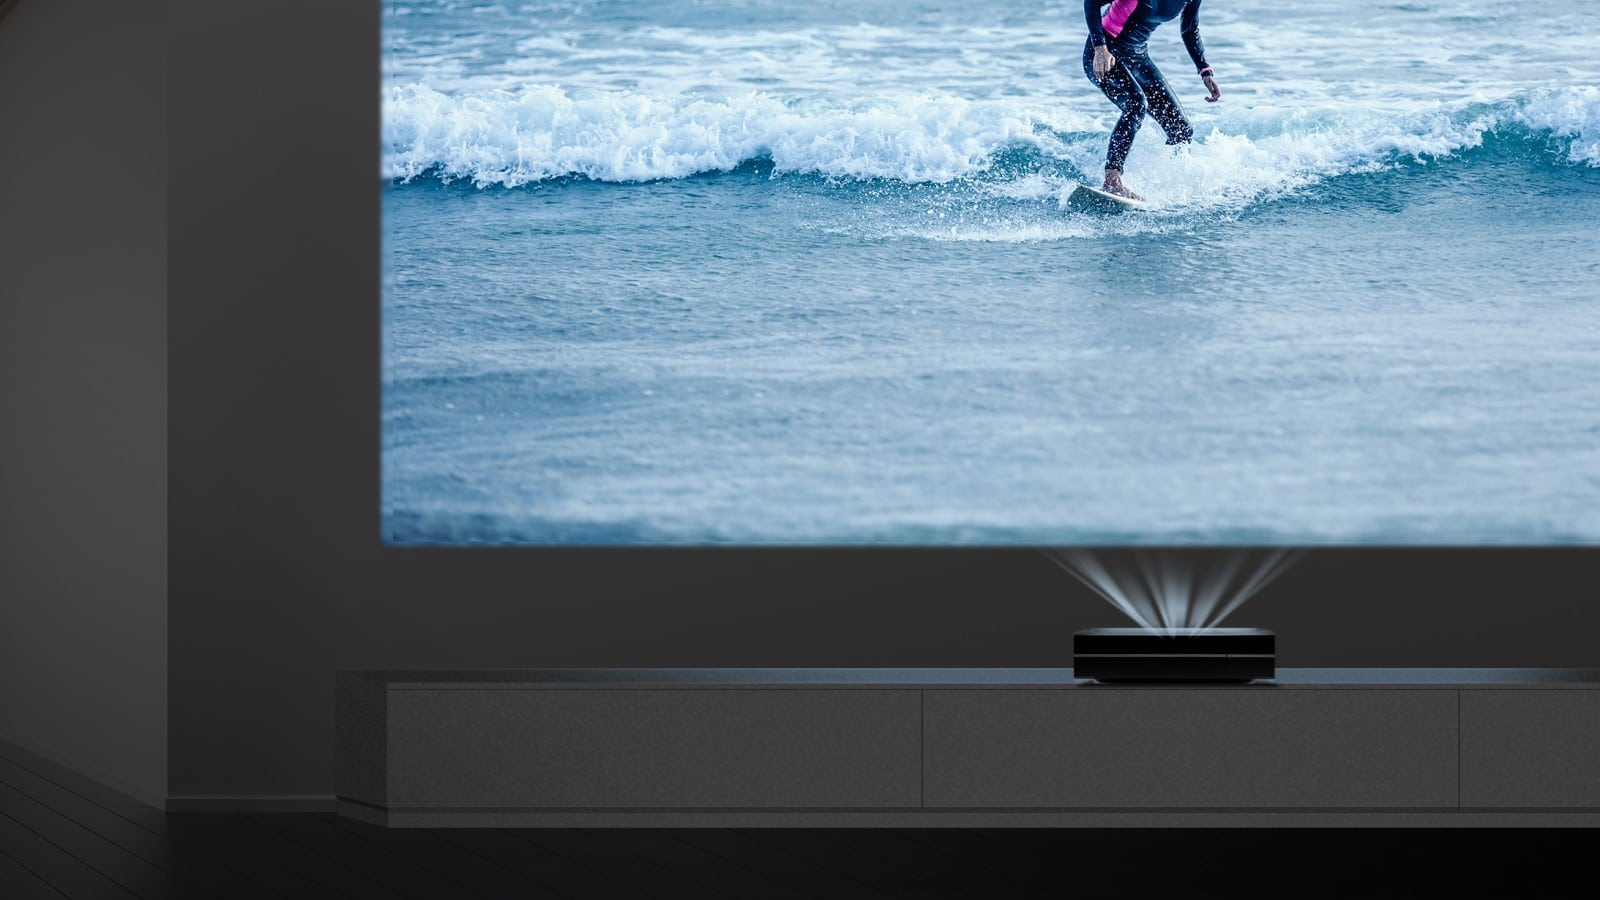 short throw projector displaying a surfer on the wall